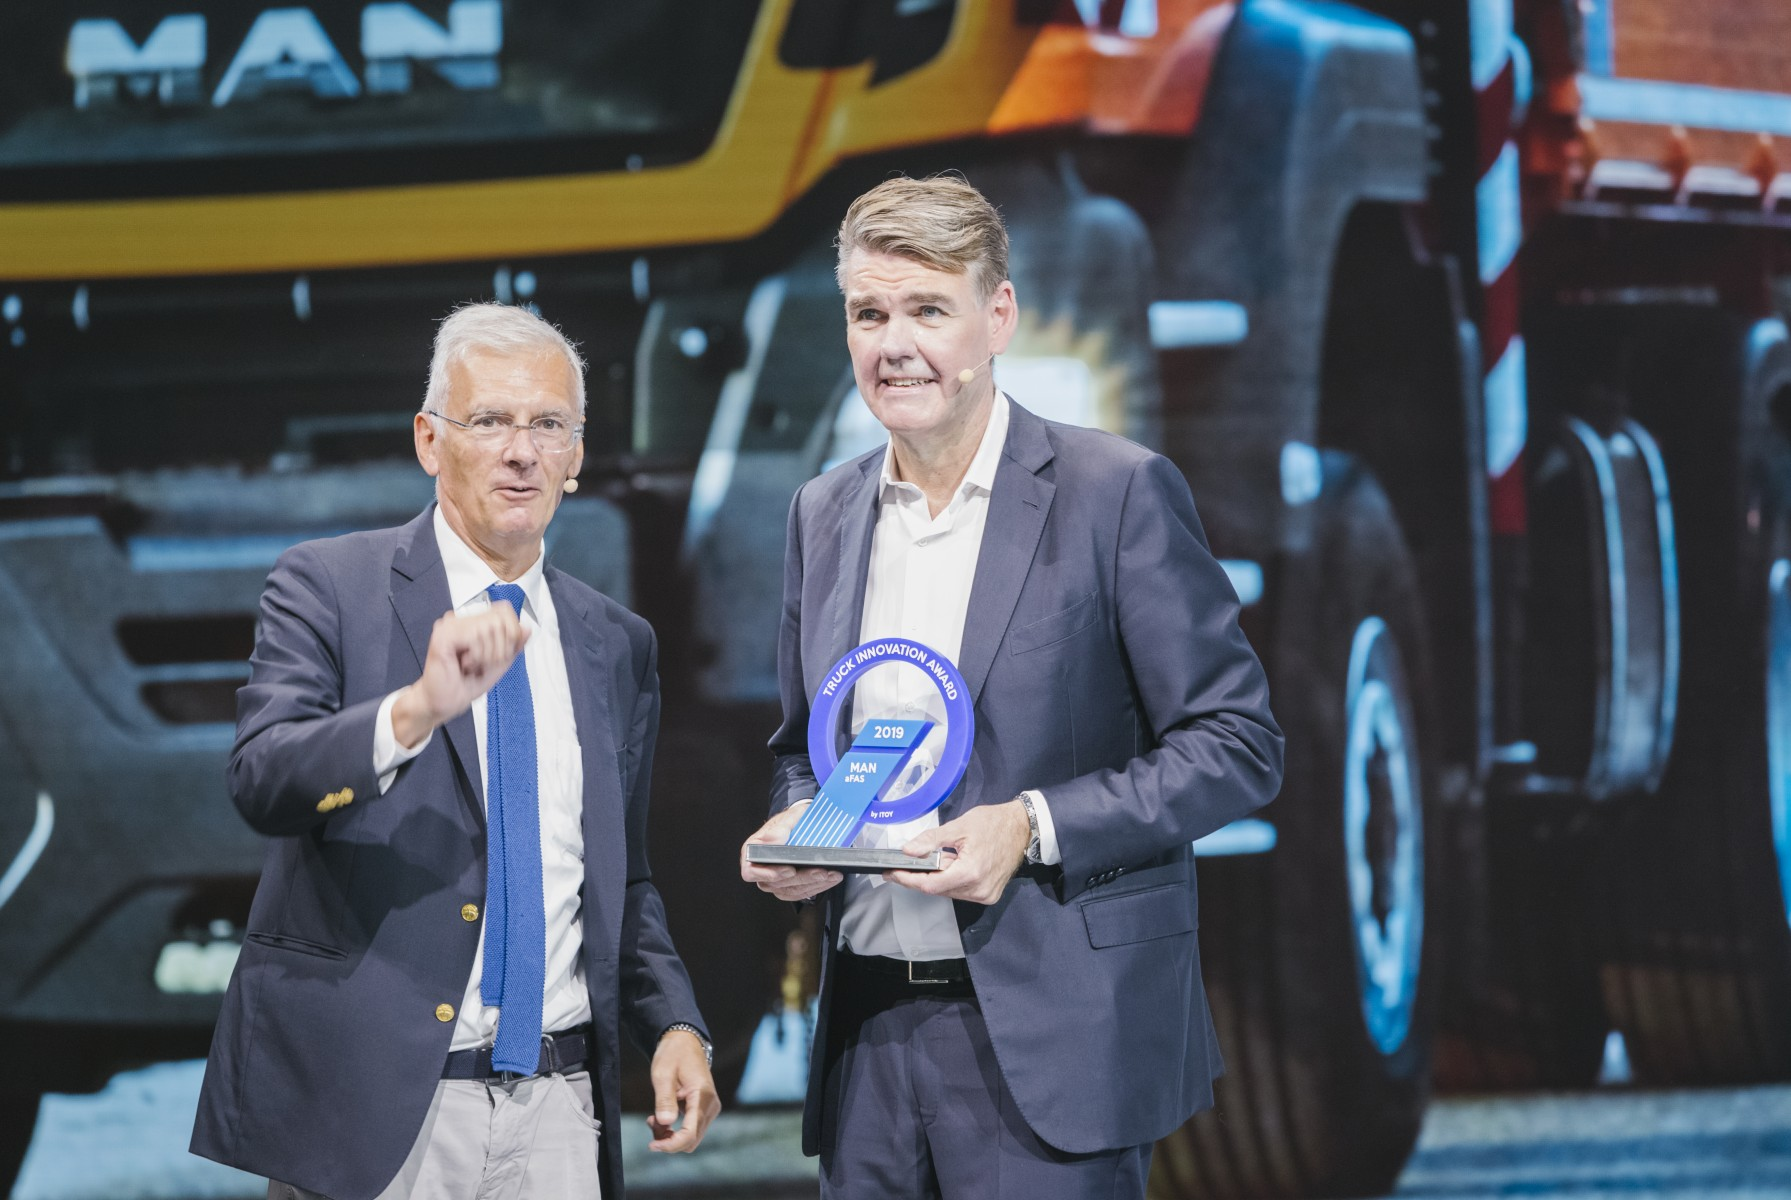 Truck Innovation Award voor MAN aFAS